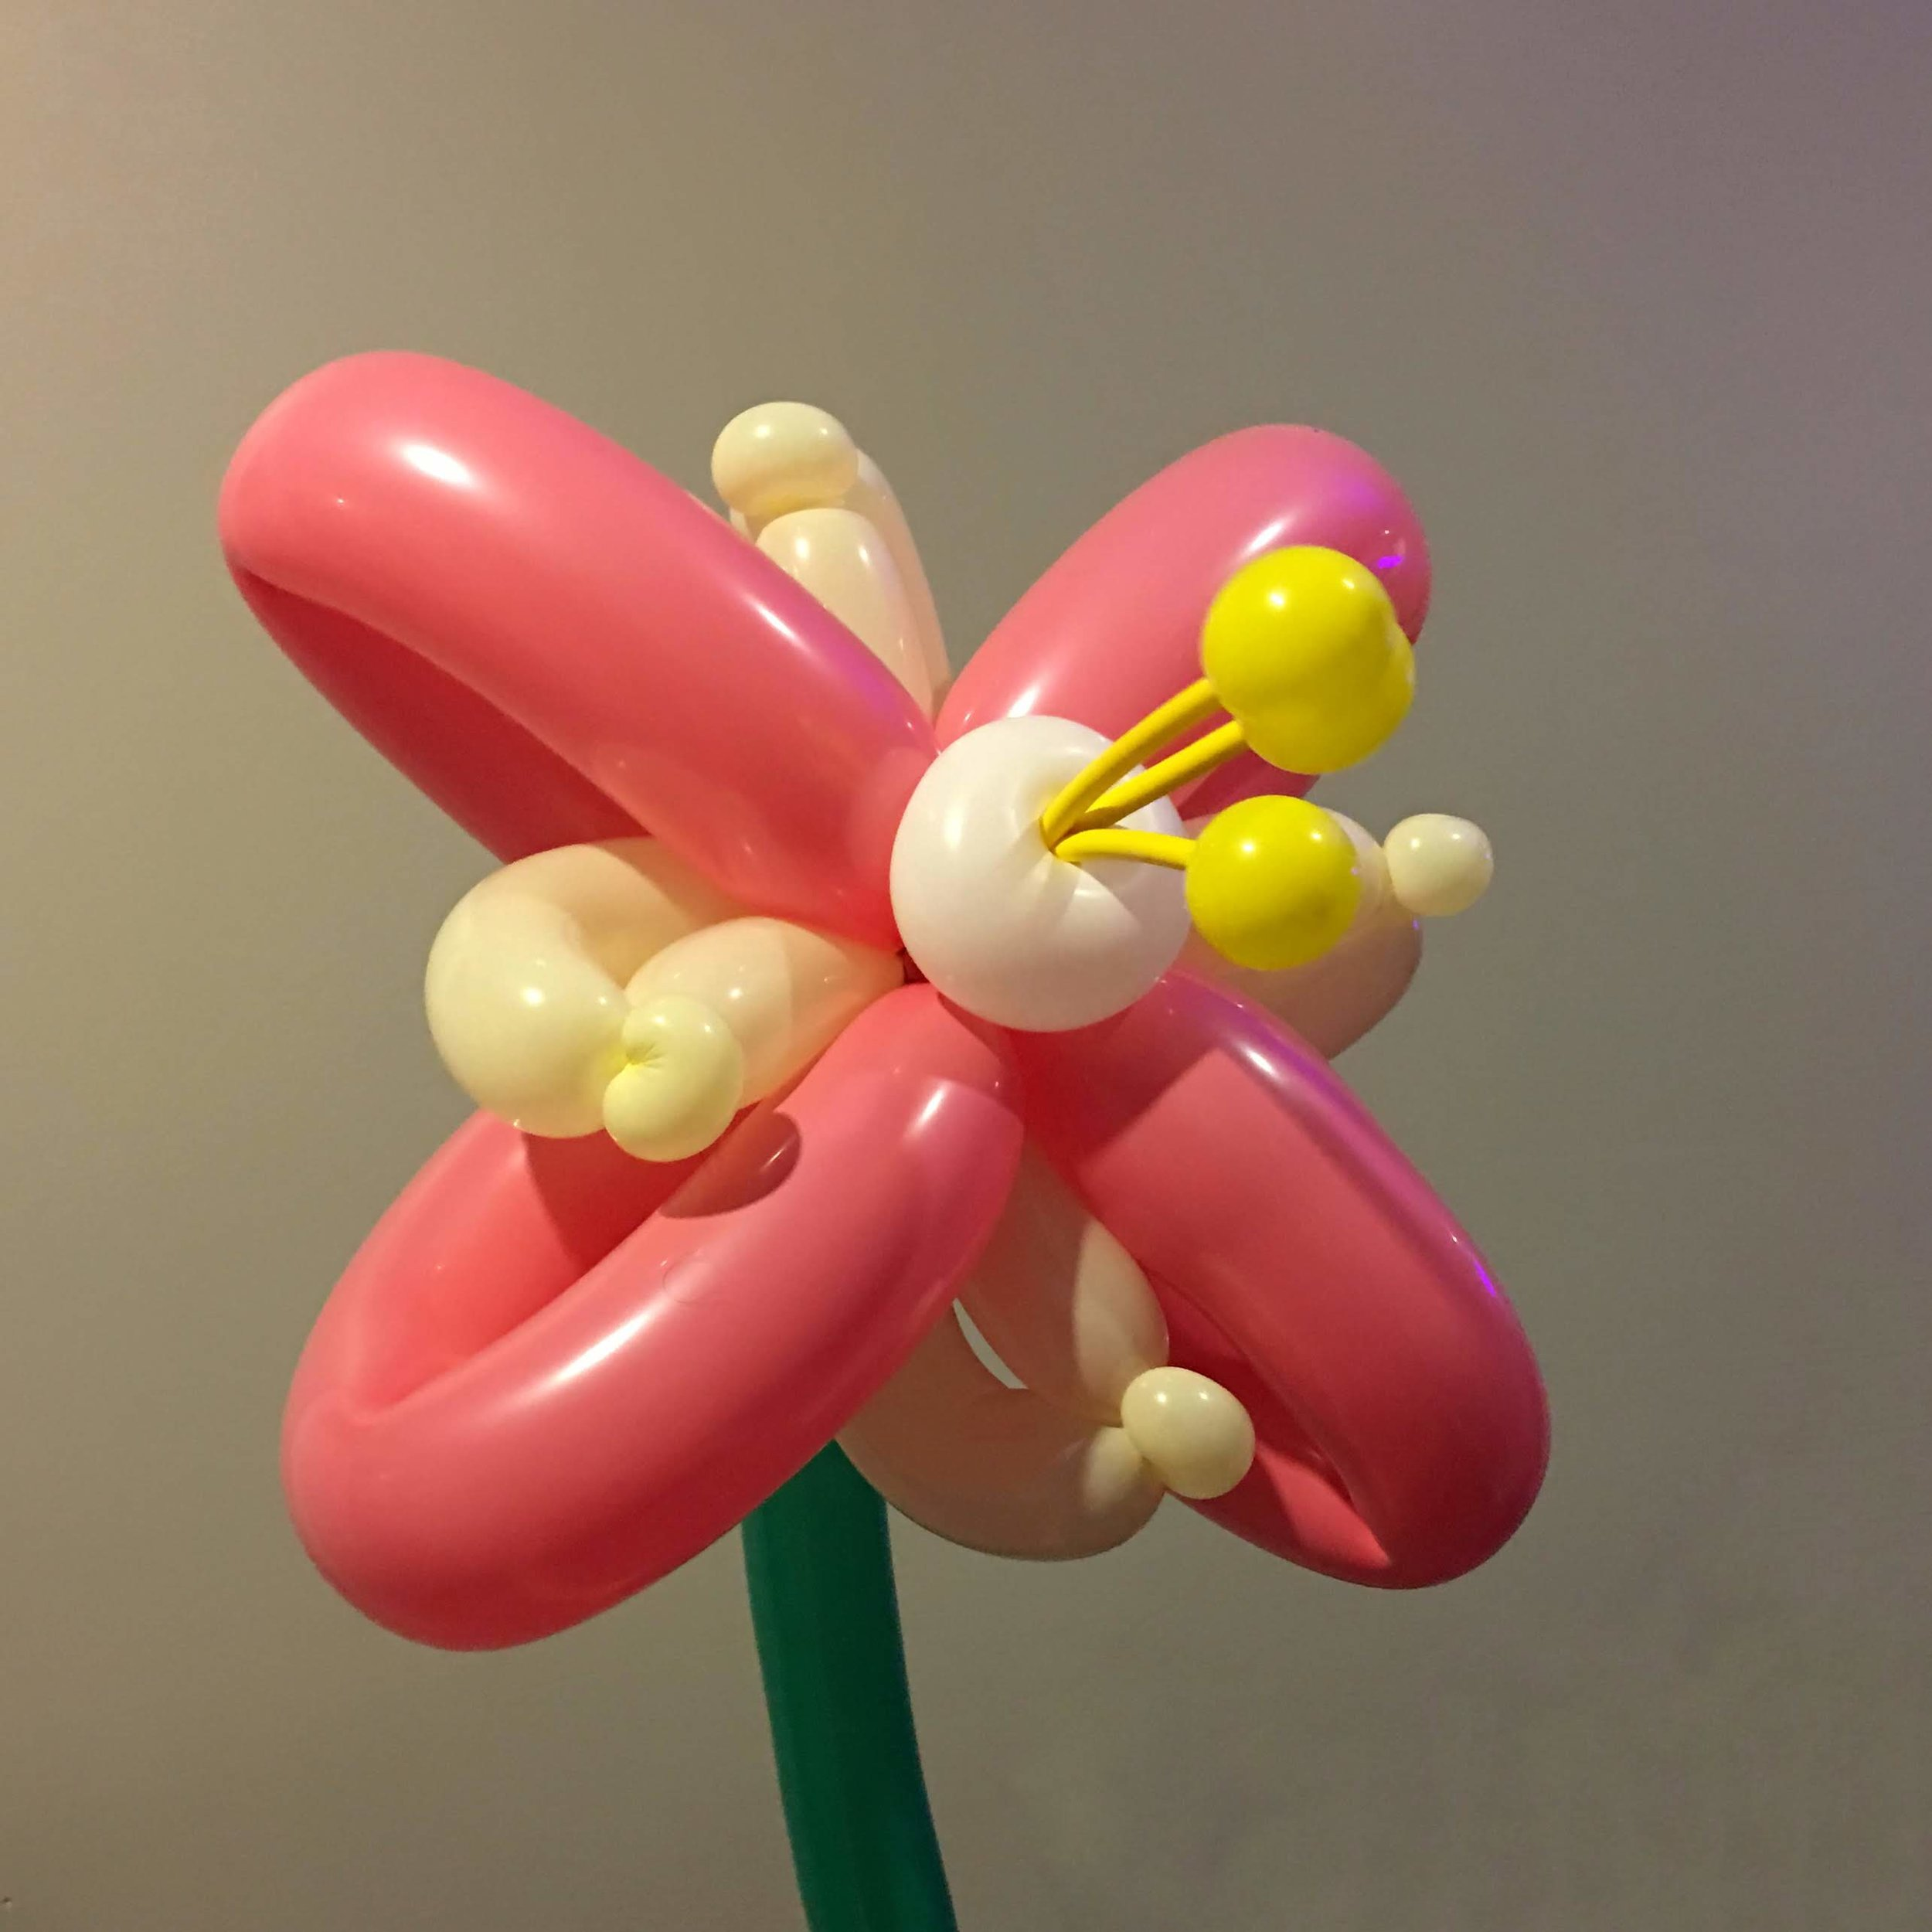 Indiv. Premium whimsical. Interwoven two toned flower with bobbles.jpg